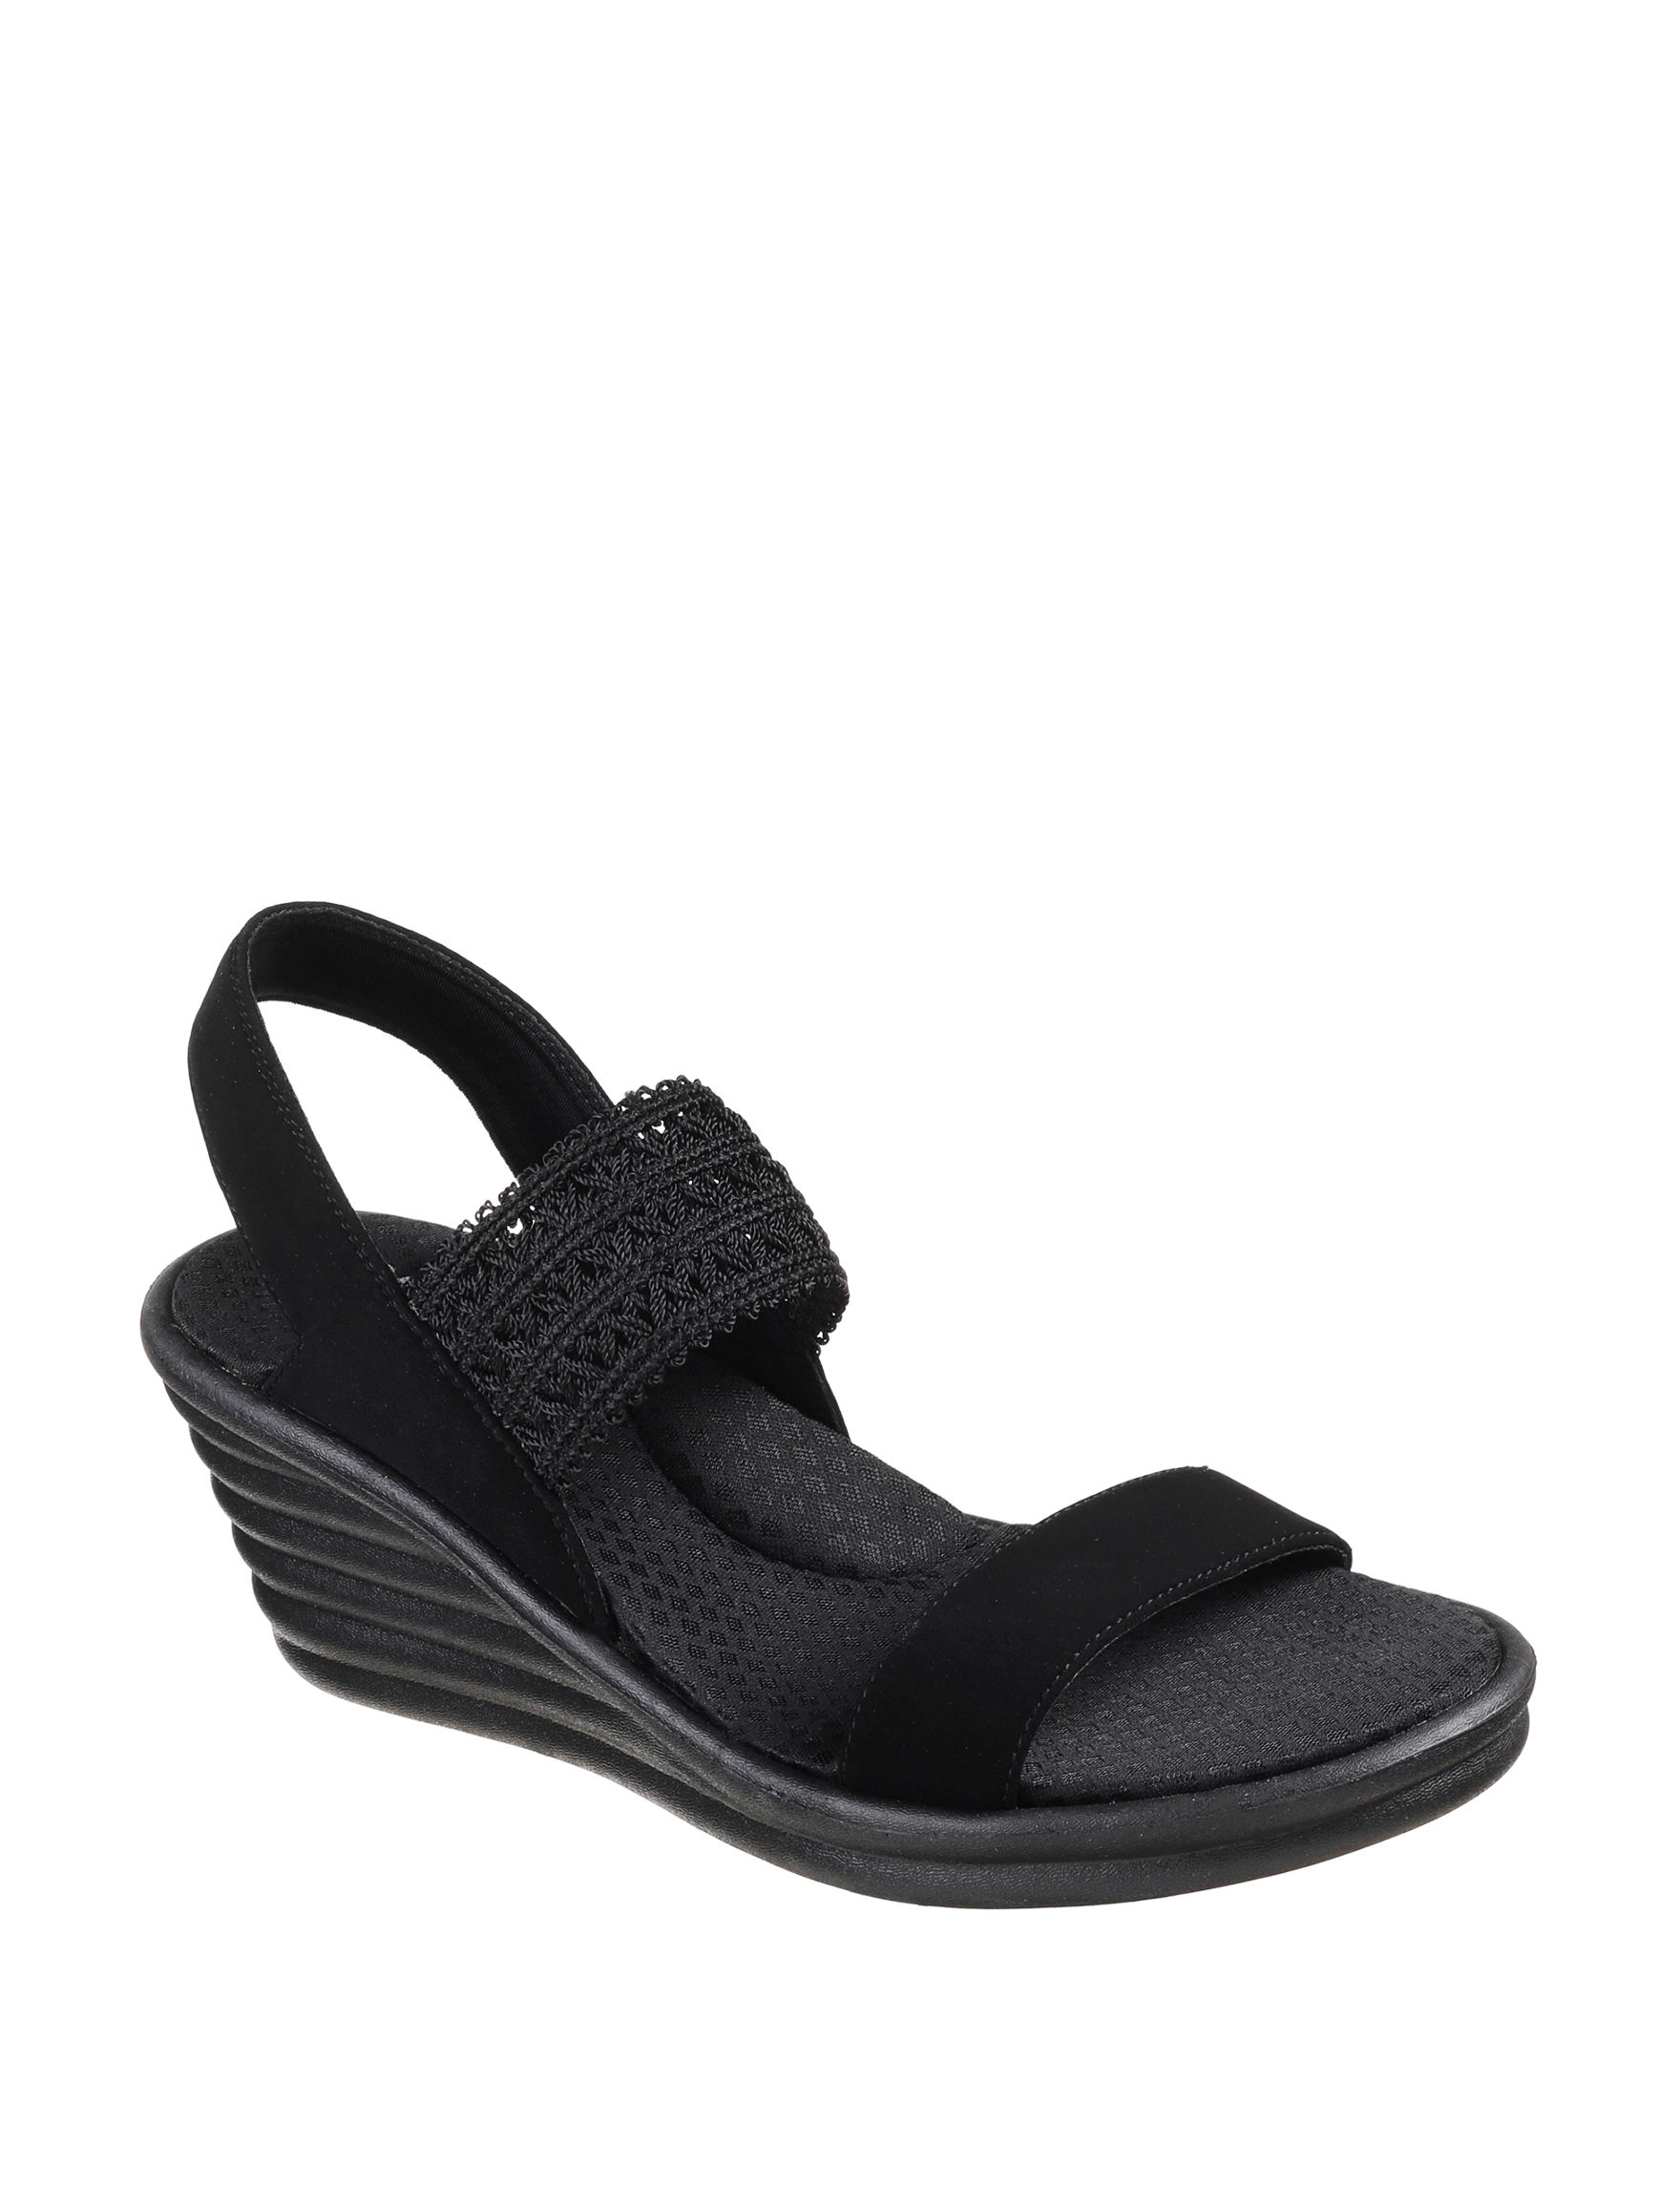 Skechers Black Wedge Sandals